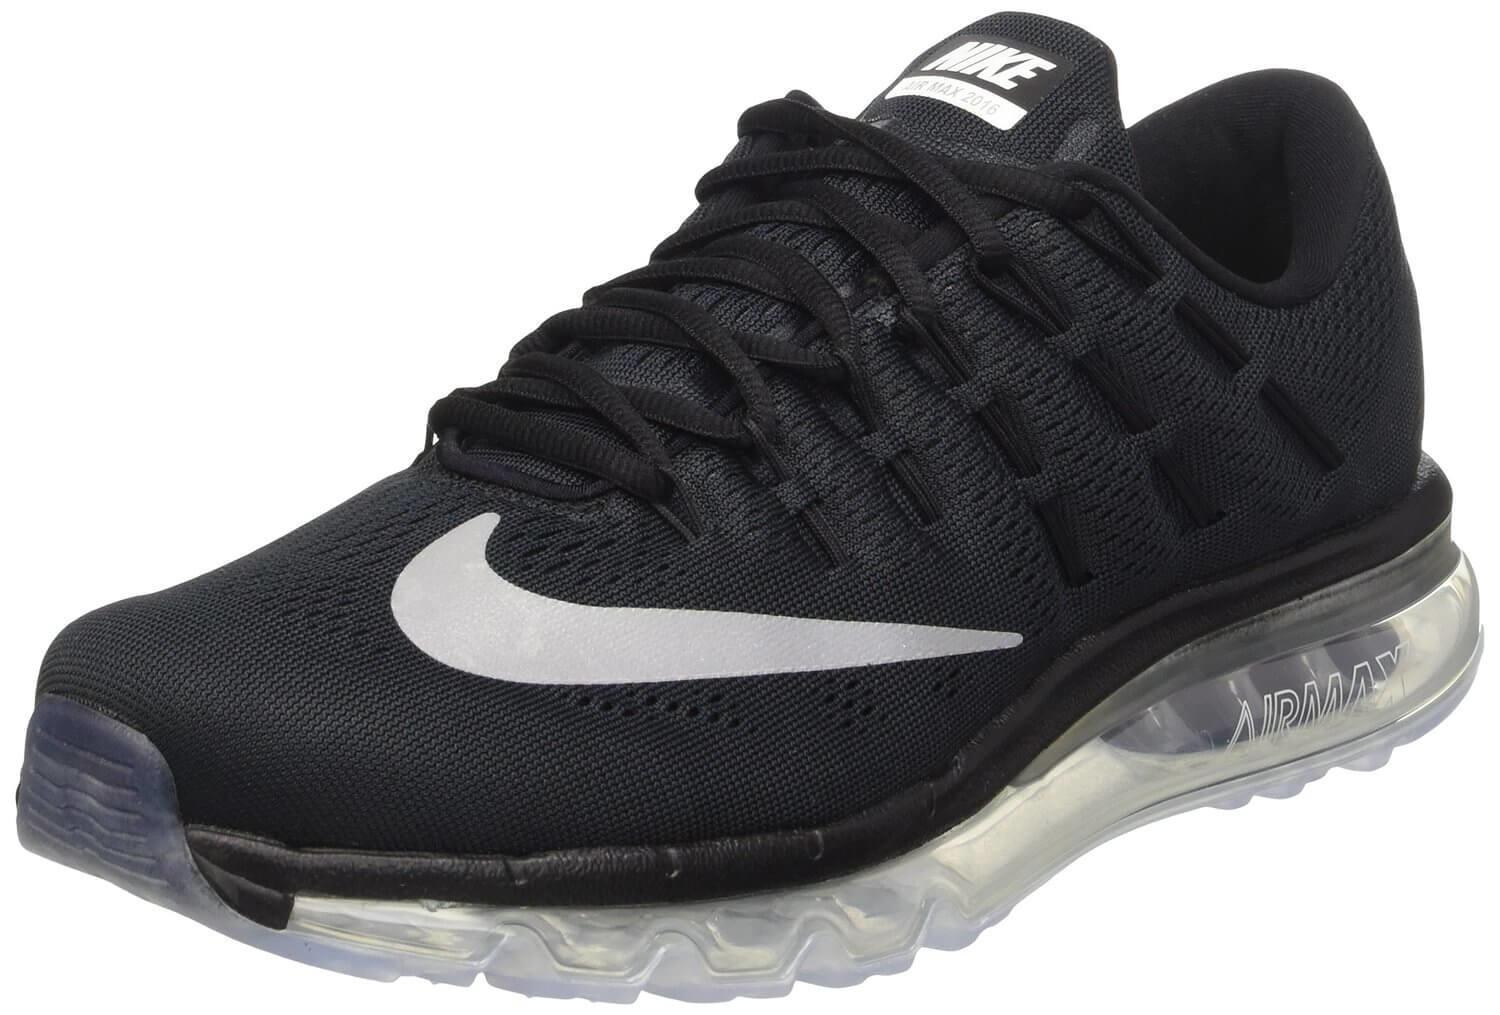 656520ff43 With a simplistic design, the Nike Air Max 2016 is still a very stylish shoe  ...